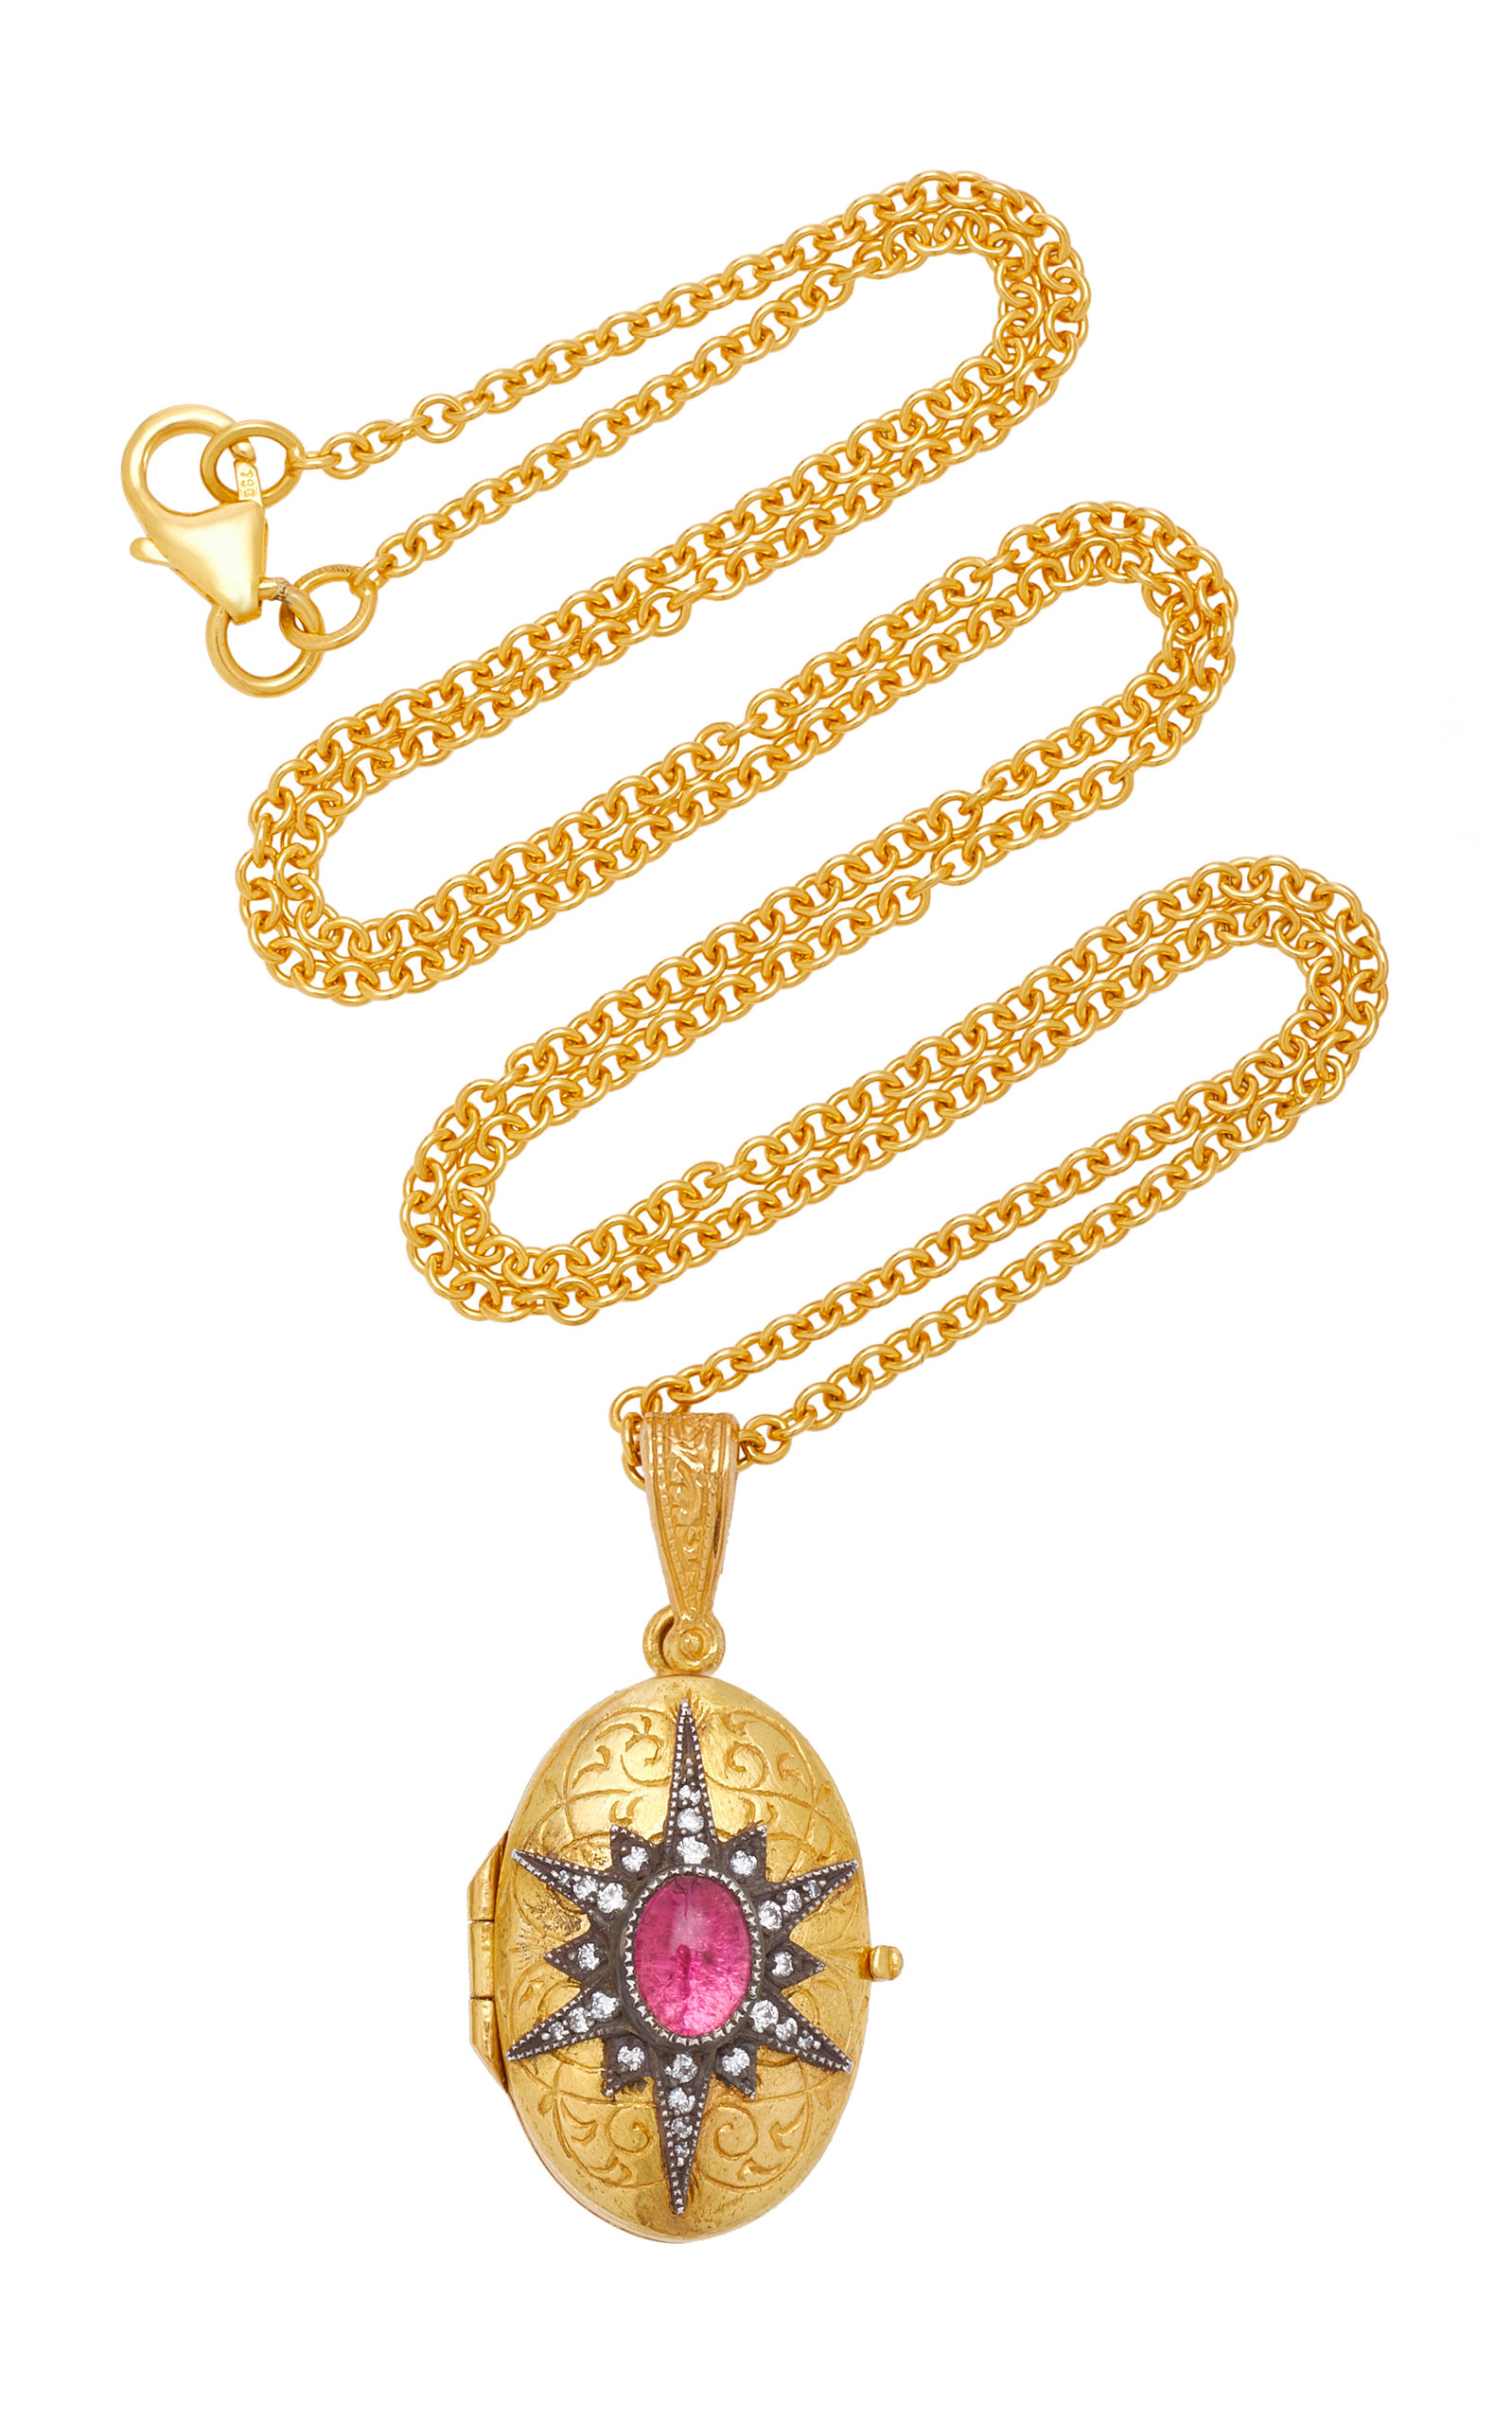 ARMAN SARKISYAN 22K Gold Pink Tourmaline And Diamond Necklace in Red